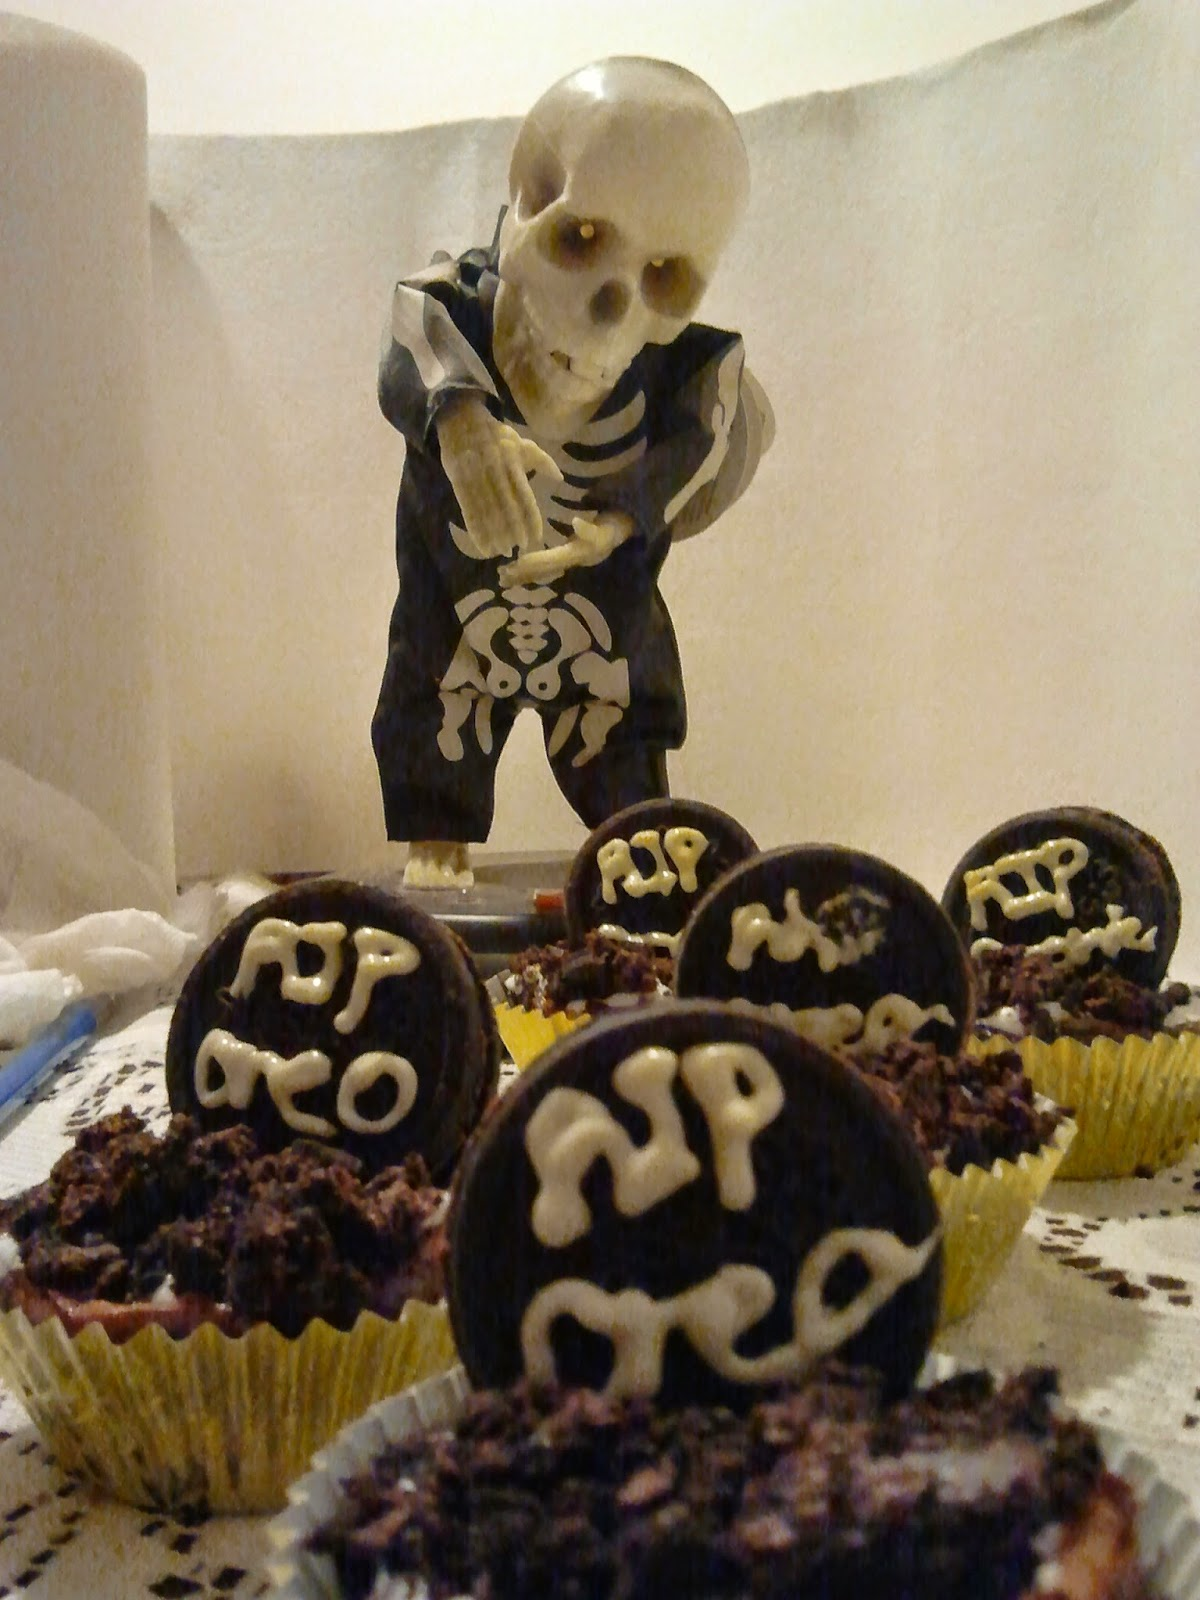 cupcakes with skeleton